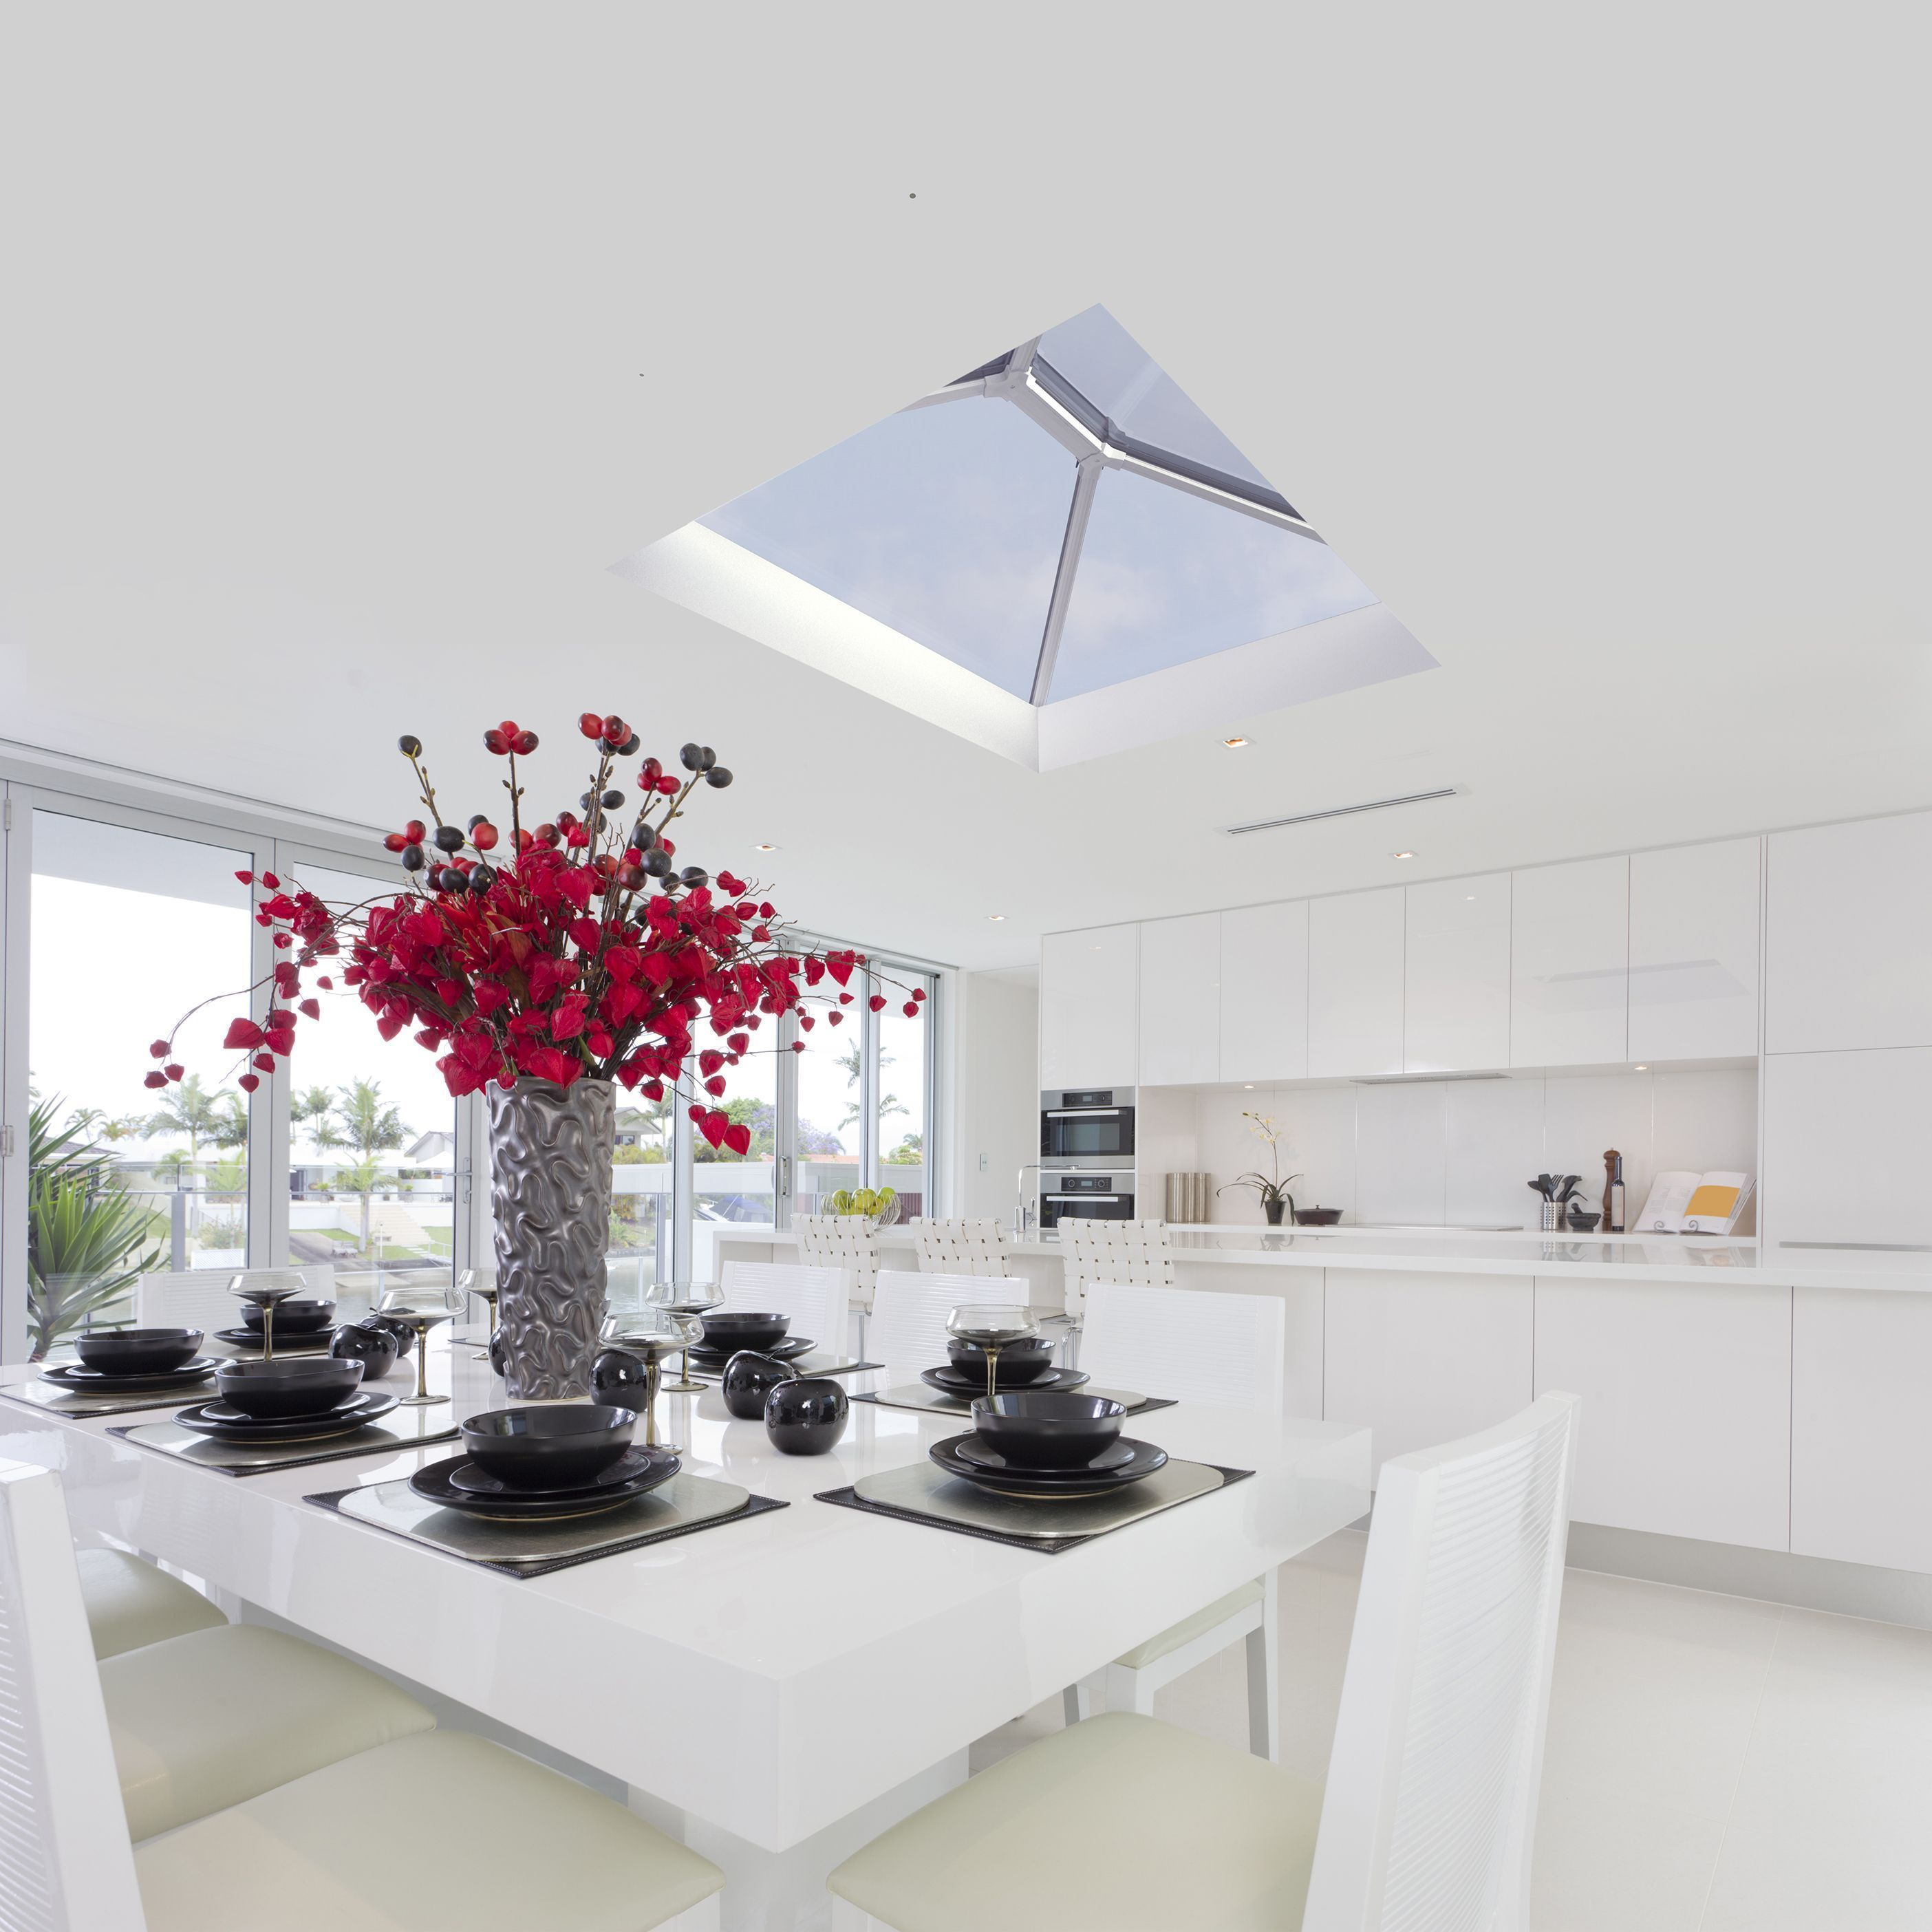 Sizes The Ultrasky Rooflight Is Available In A Number Of Bespoke